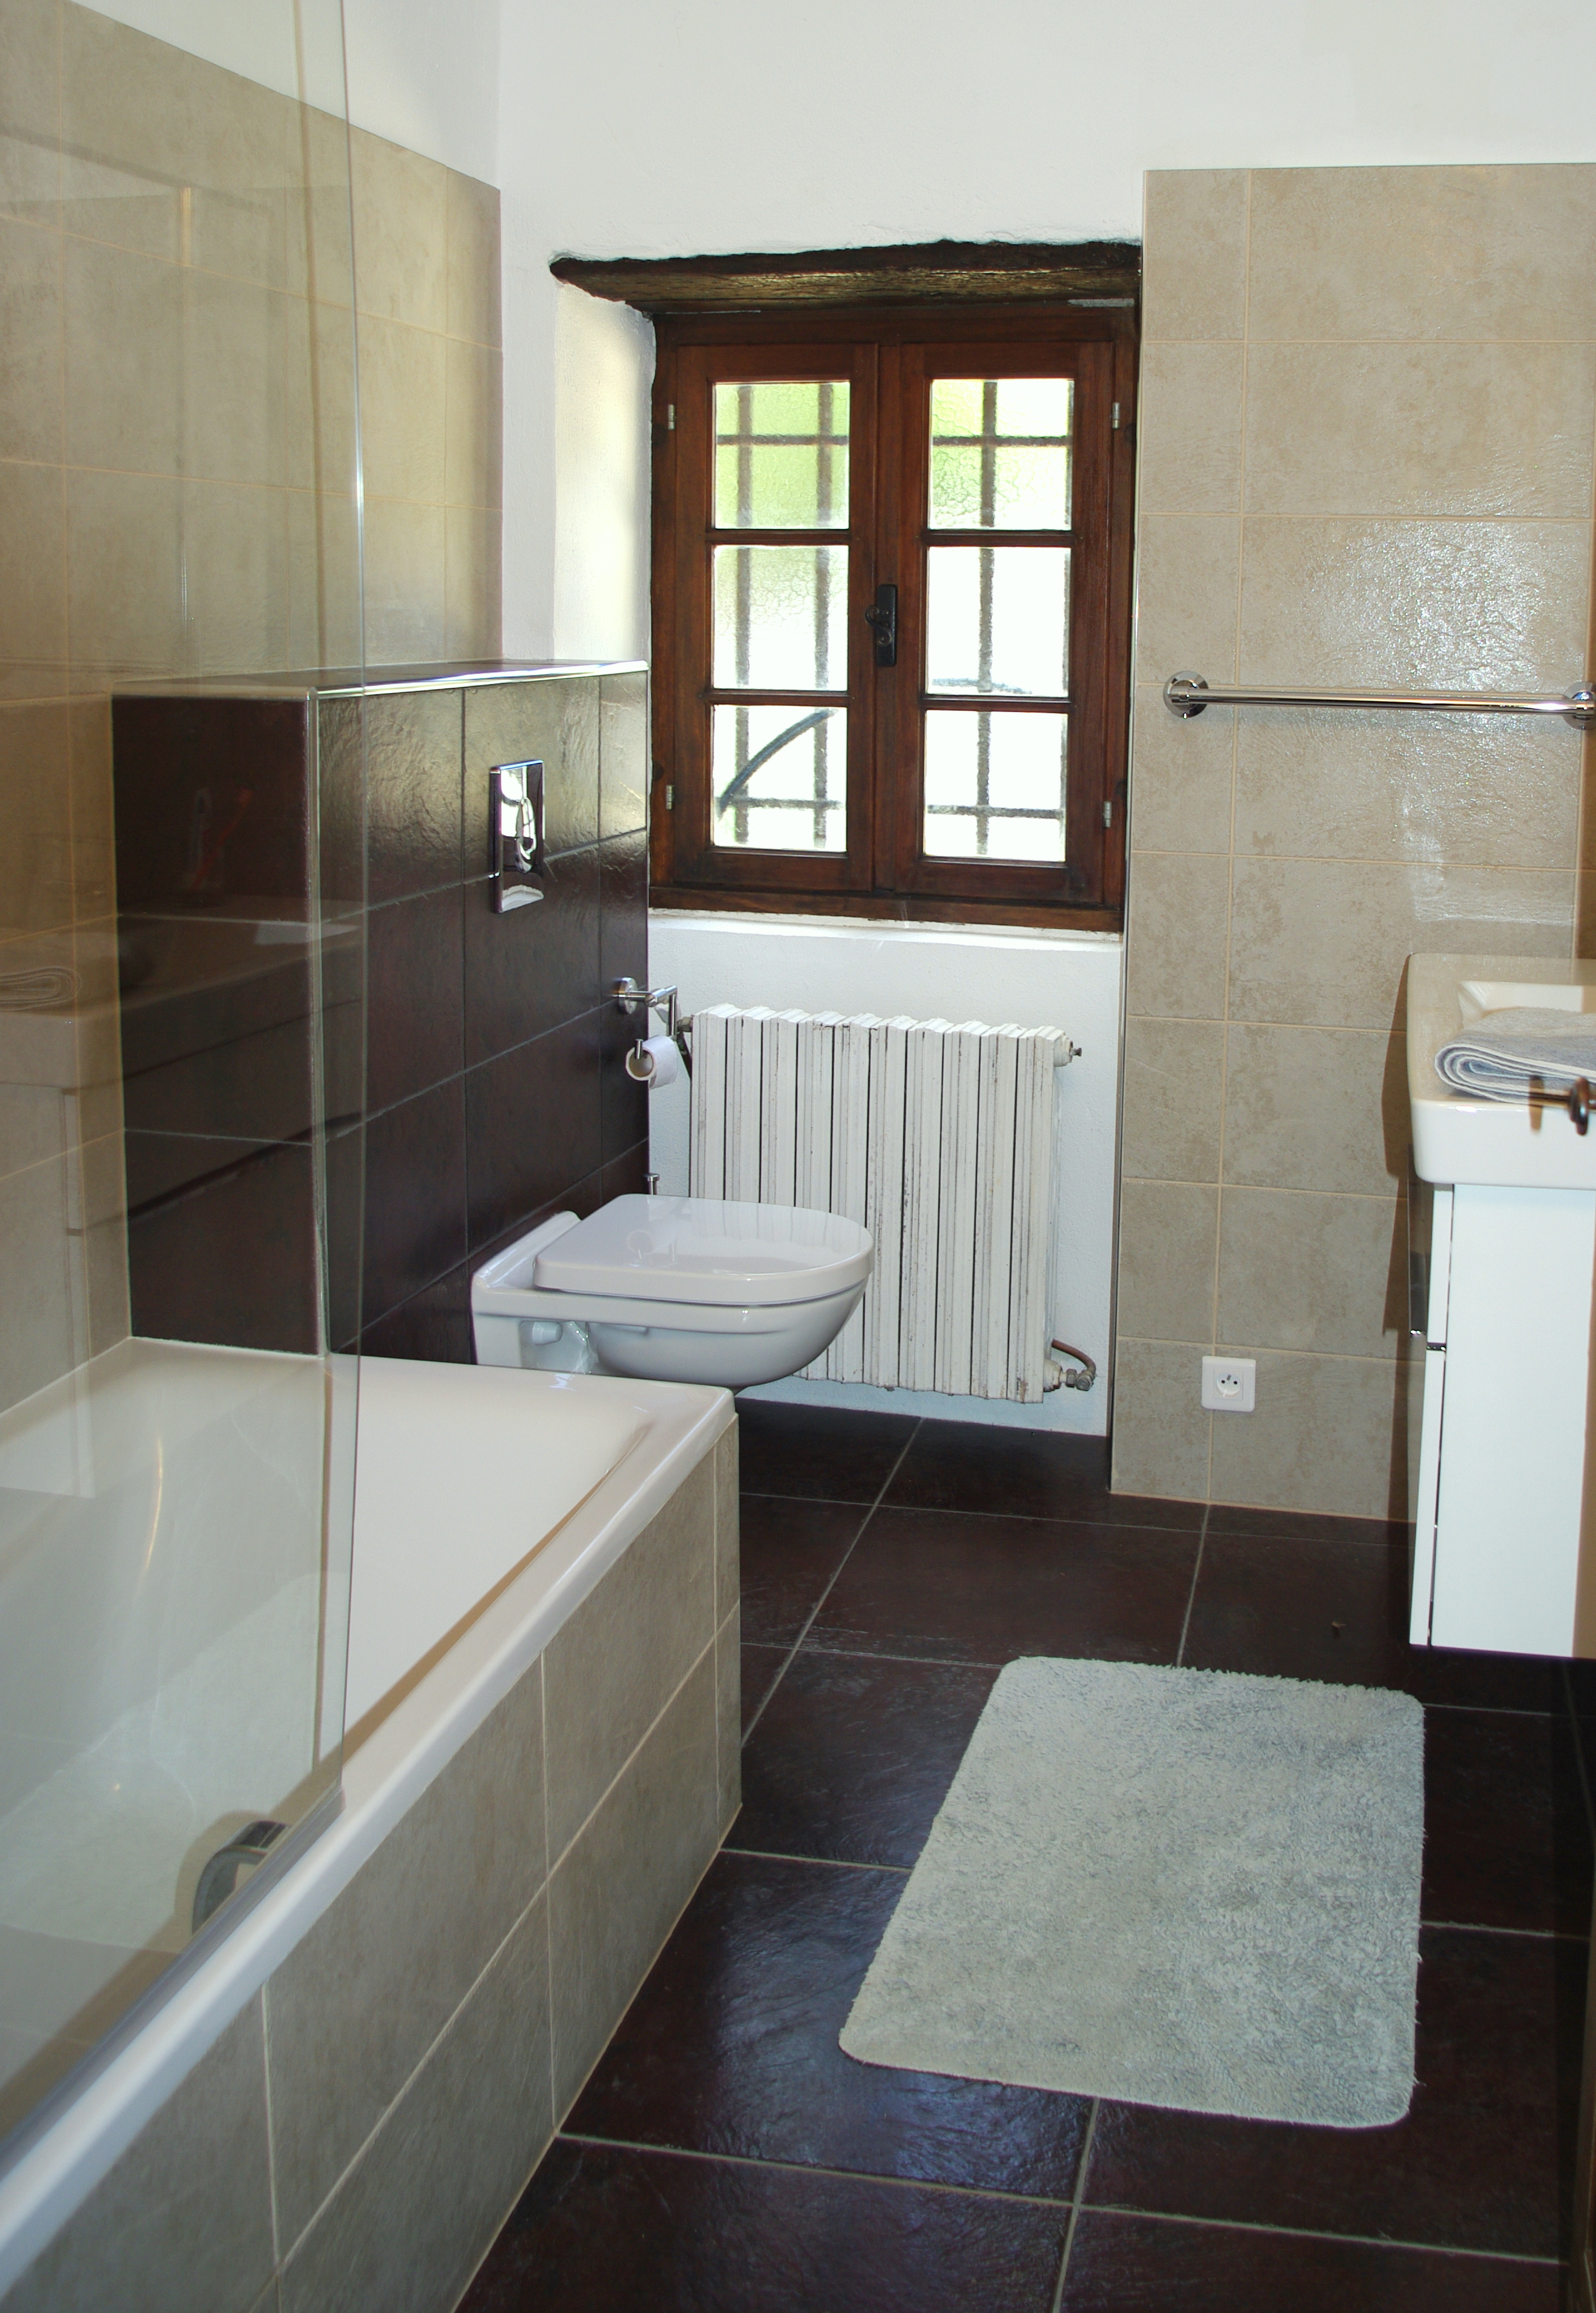 Bath room with combined tub/shower